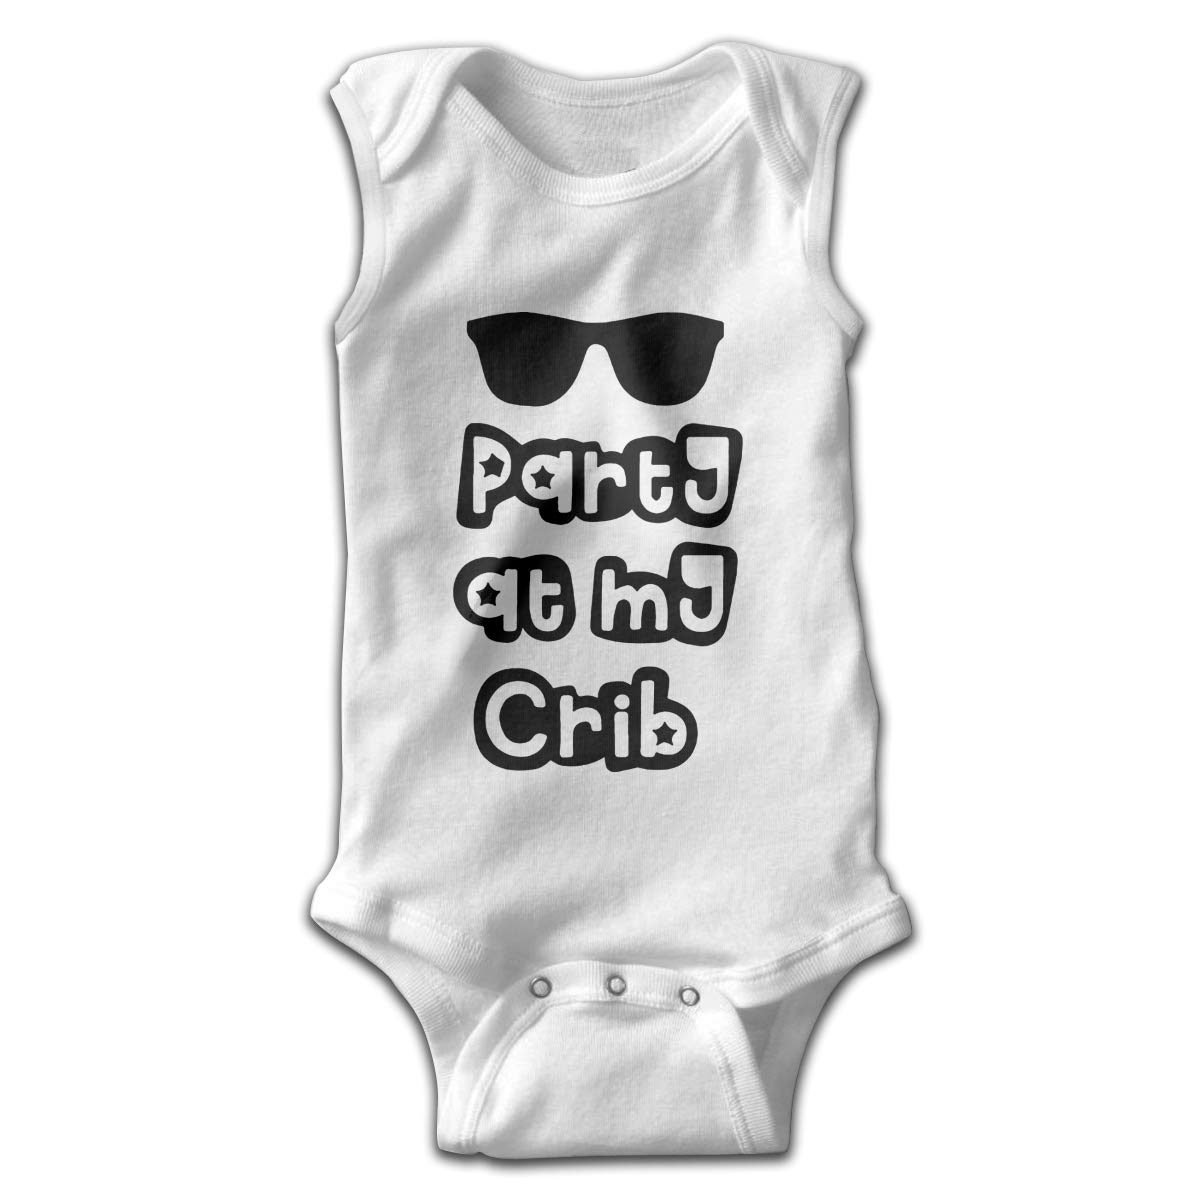 Party at My Crib Newborn Baby Clothes Bodysuit Sleeveless Summer Novelty Funny Gift for Baby